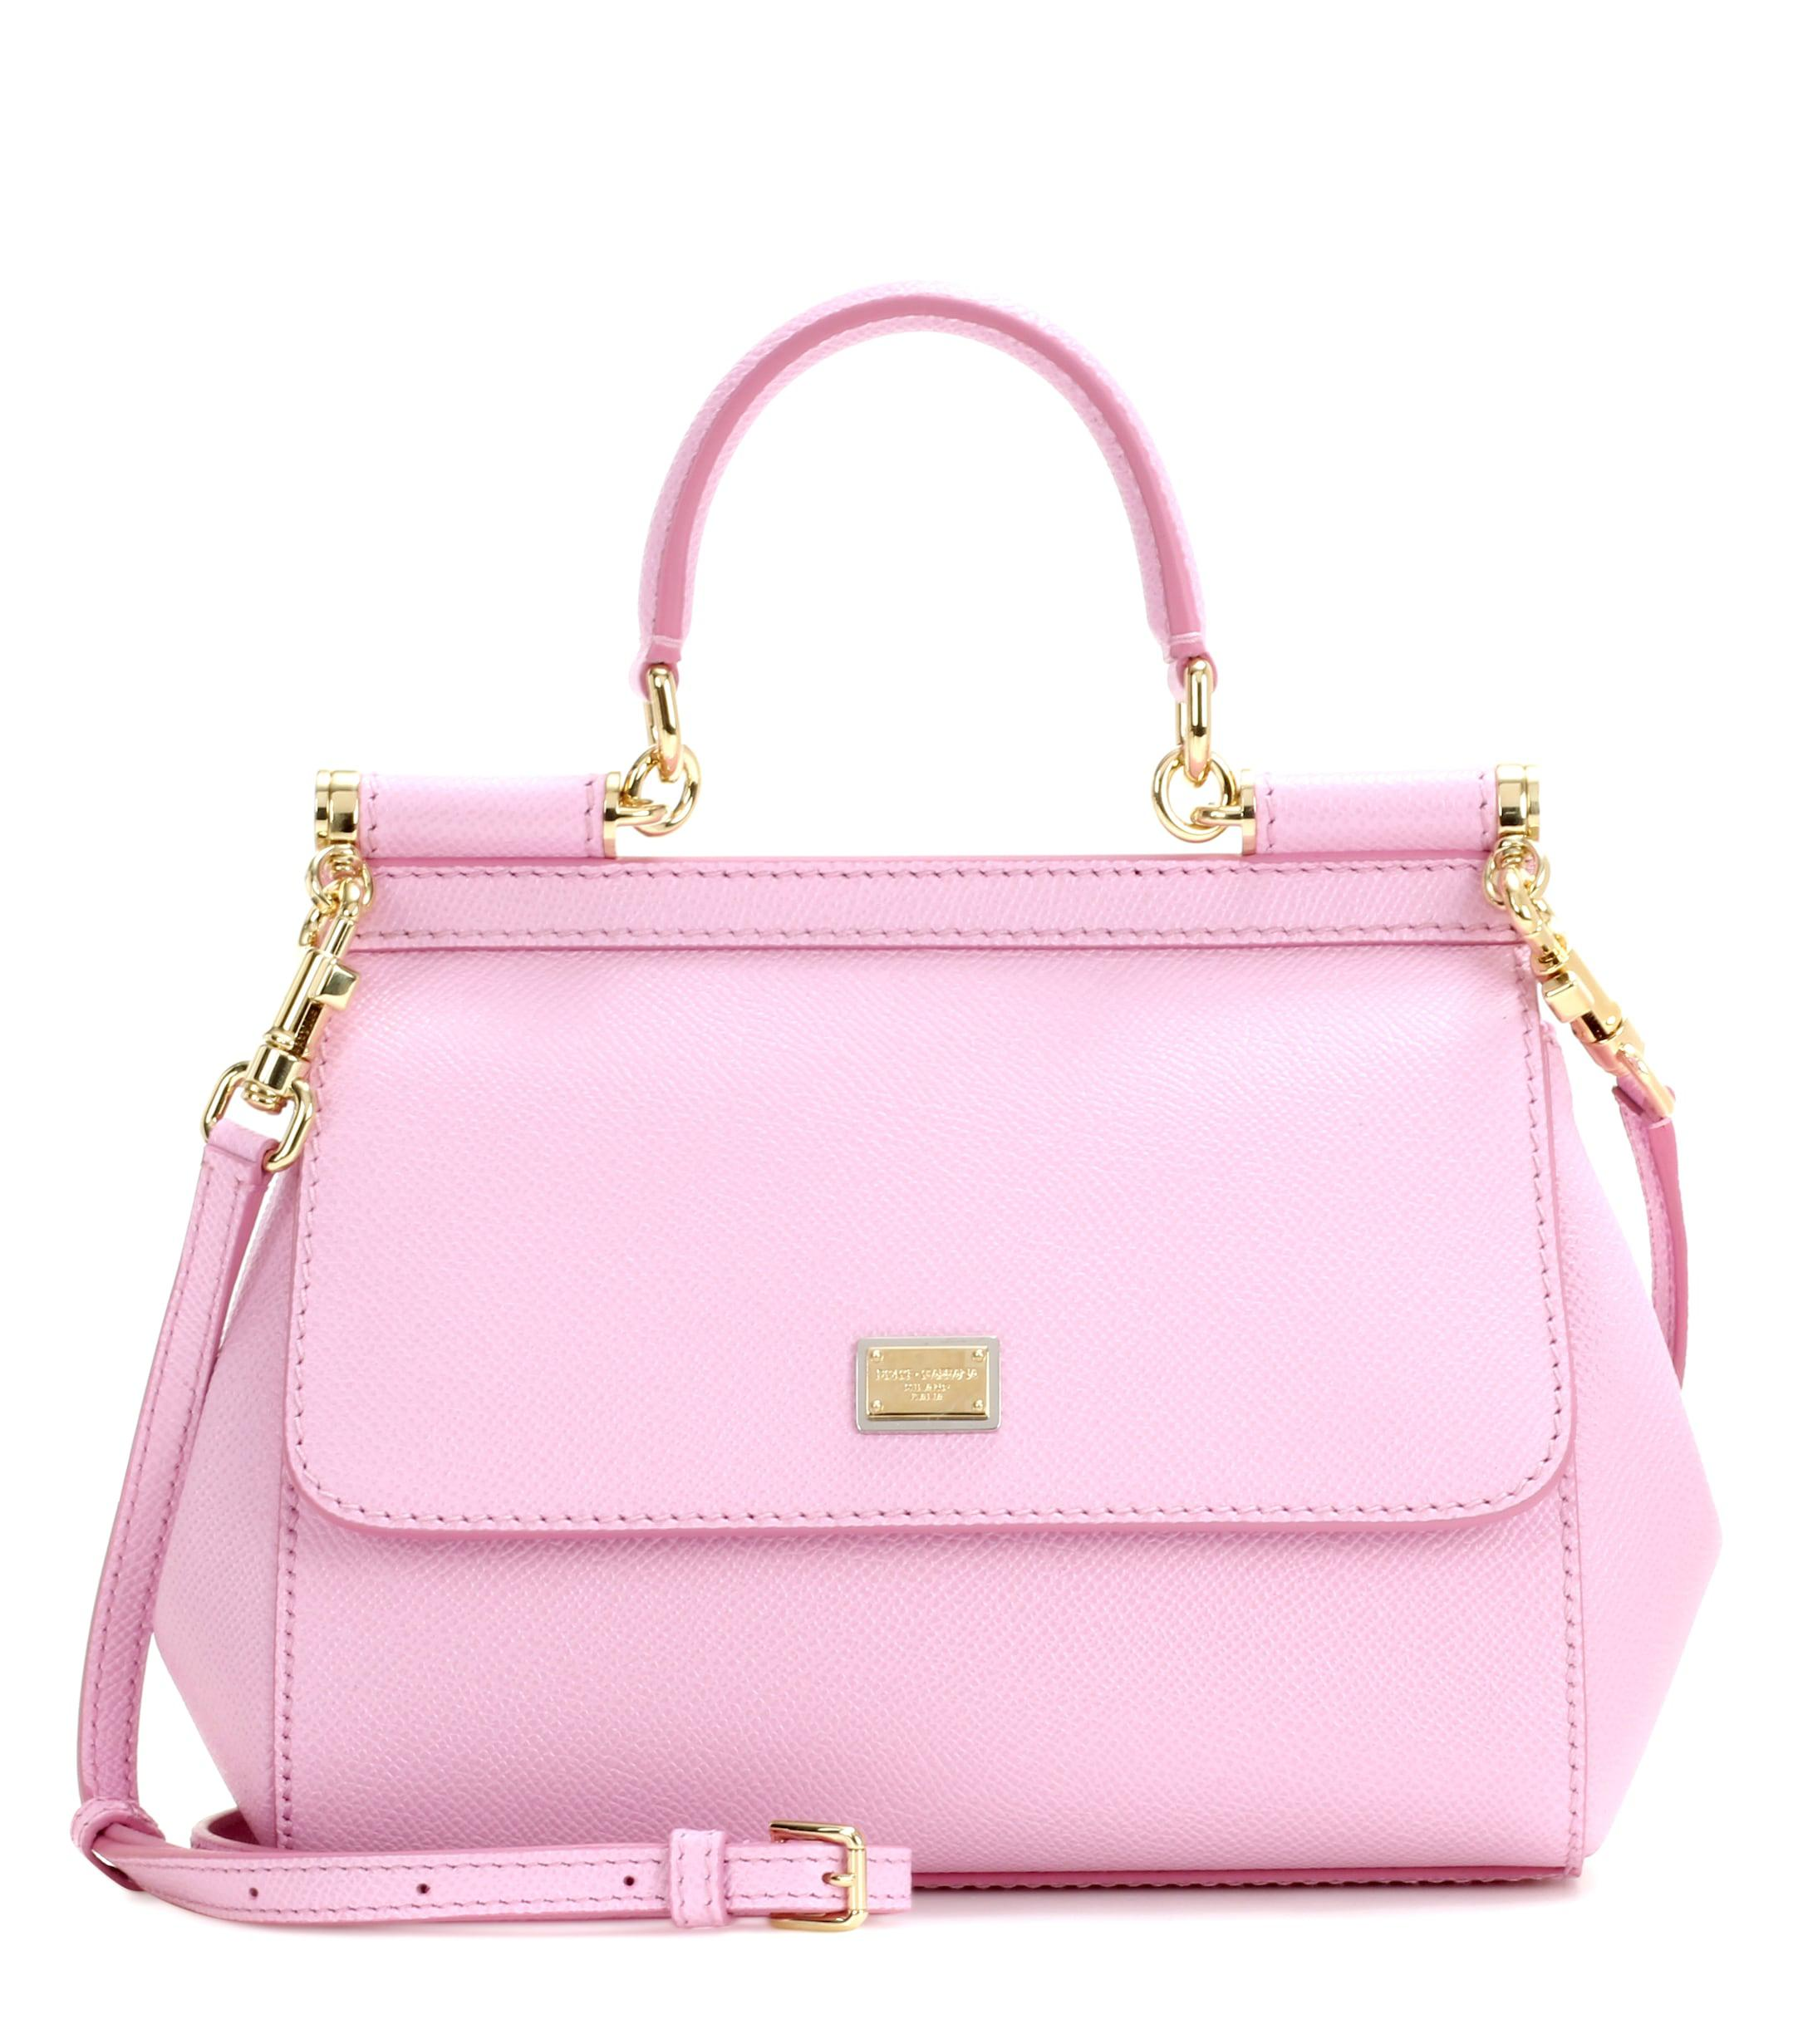 f00d6ff5a868 Lyst - Dolce   Gabbana Sicily Small Leather Shoulder Bag in Pink